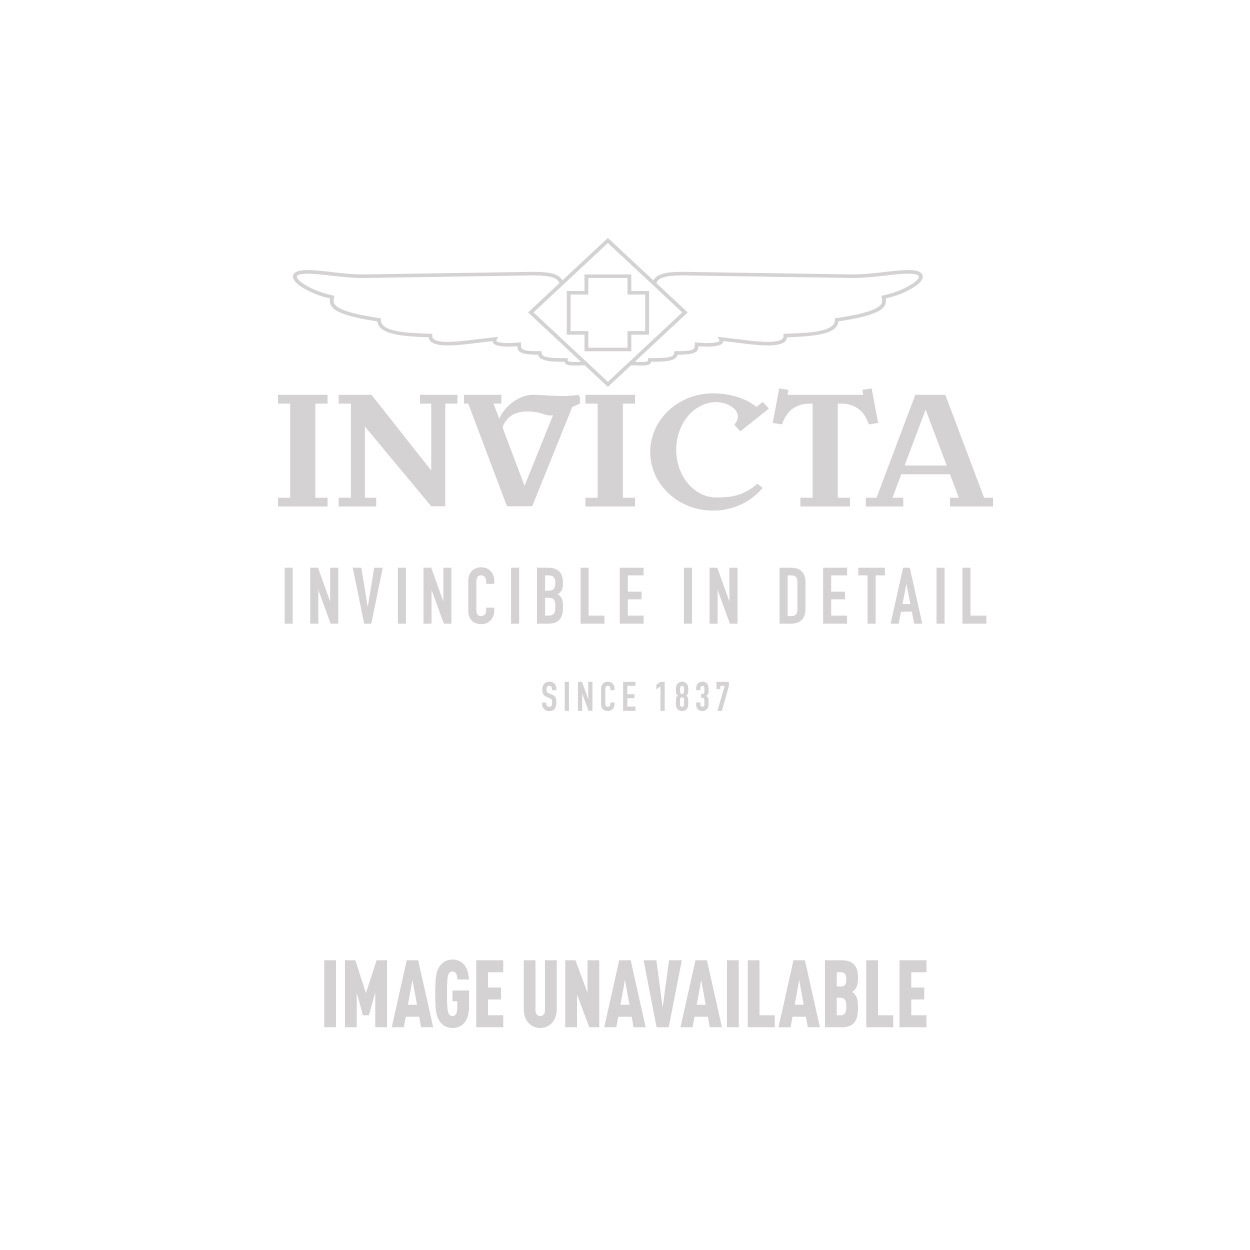 Invicta Pro Diver Quartz Watch - Stainless Steel case Stainless Steel band - Model 20096